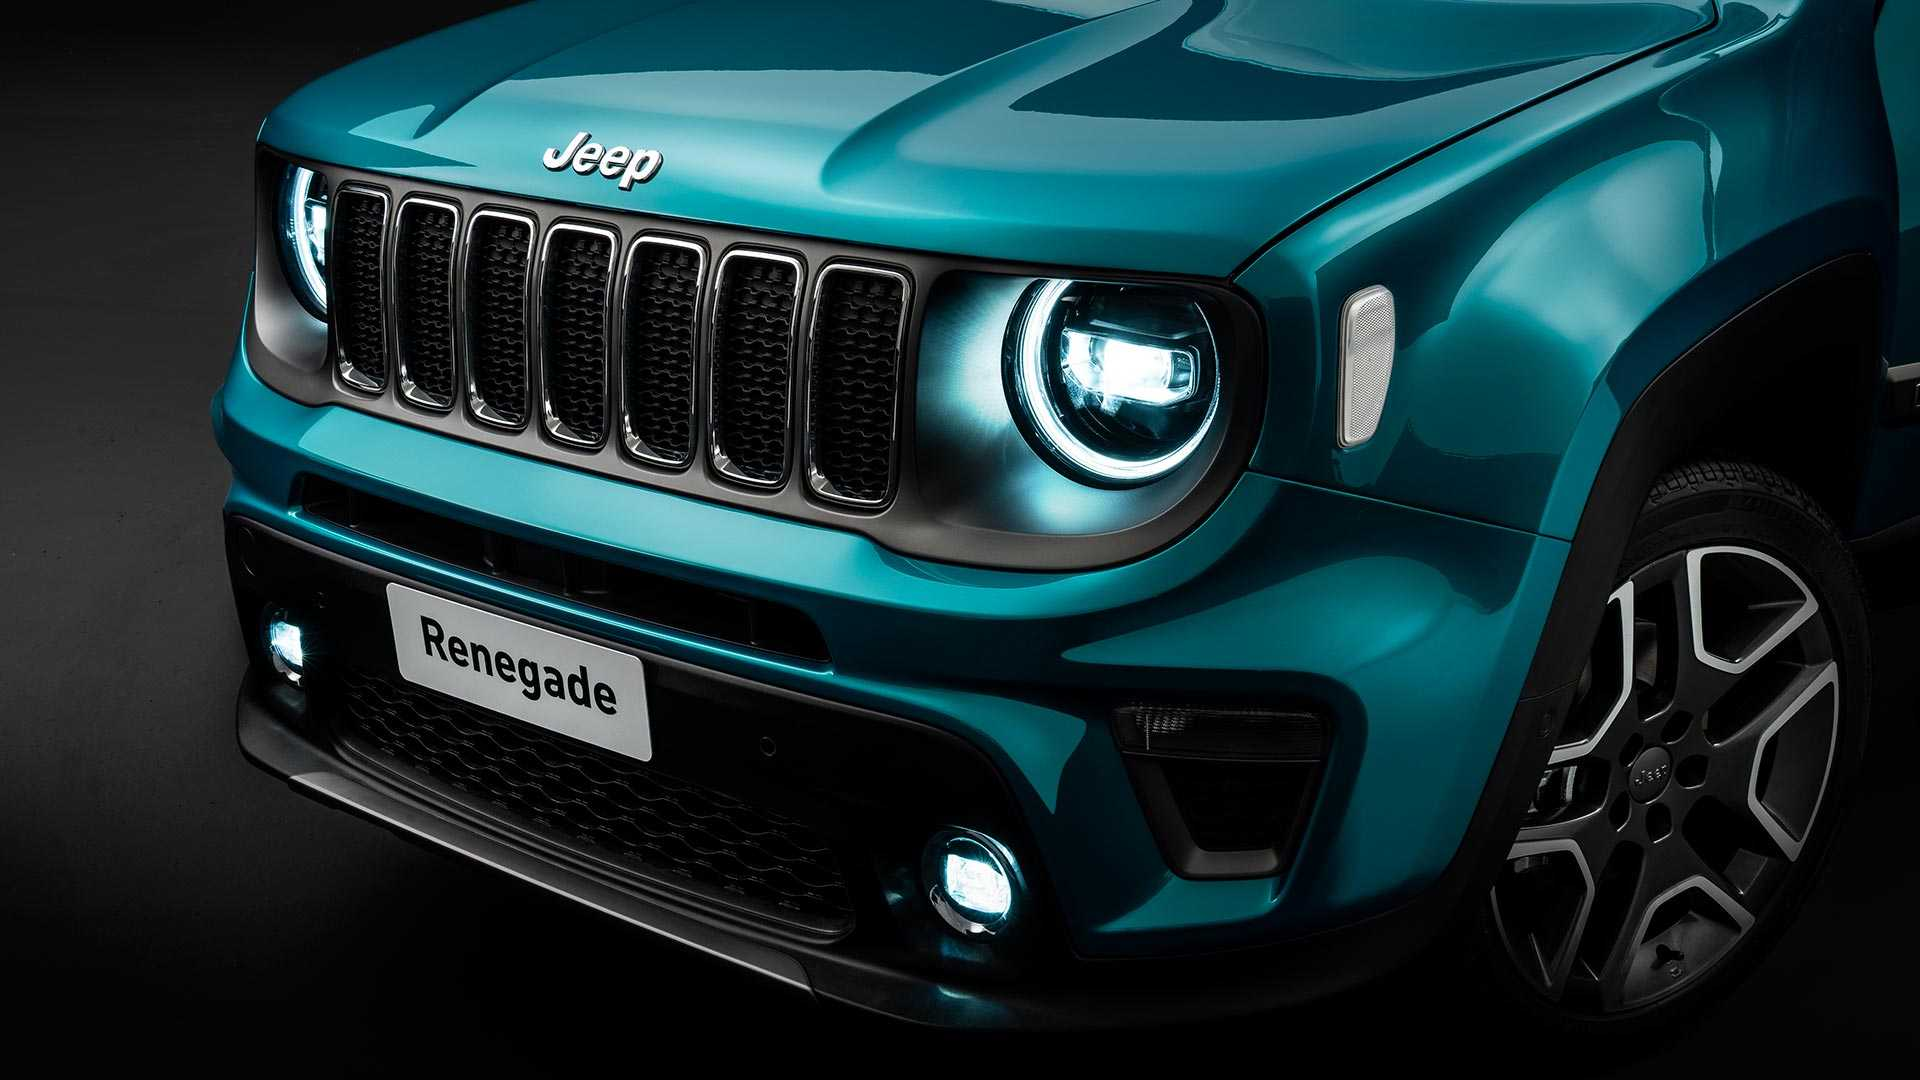 88 The Best Jeep Renegade 2020 Colors Speed Test